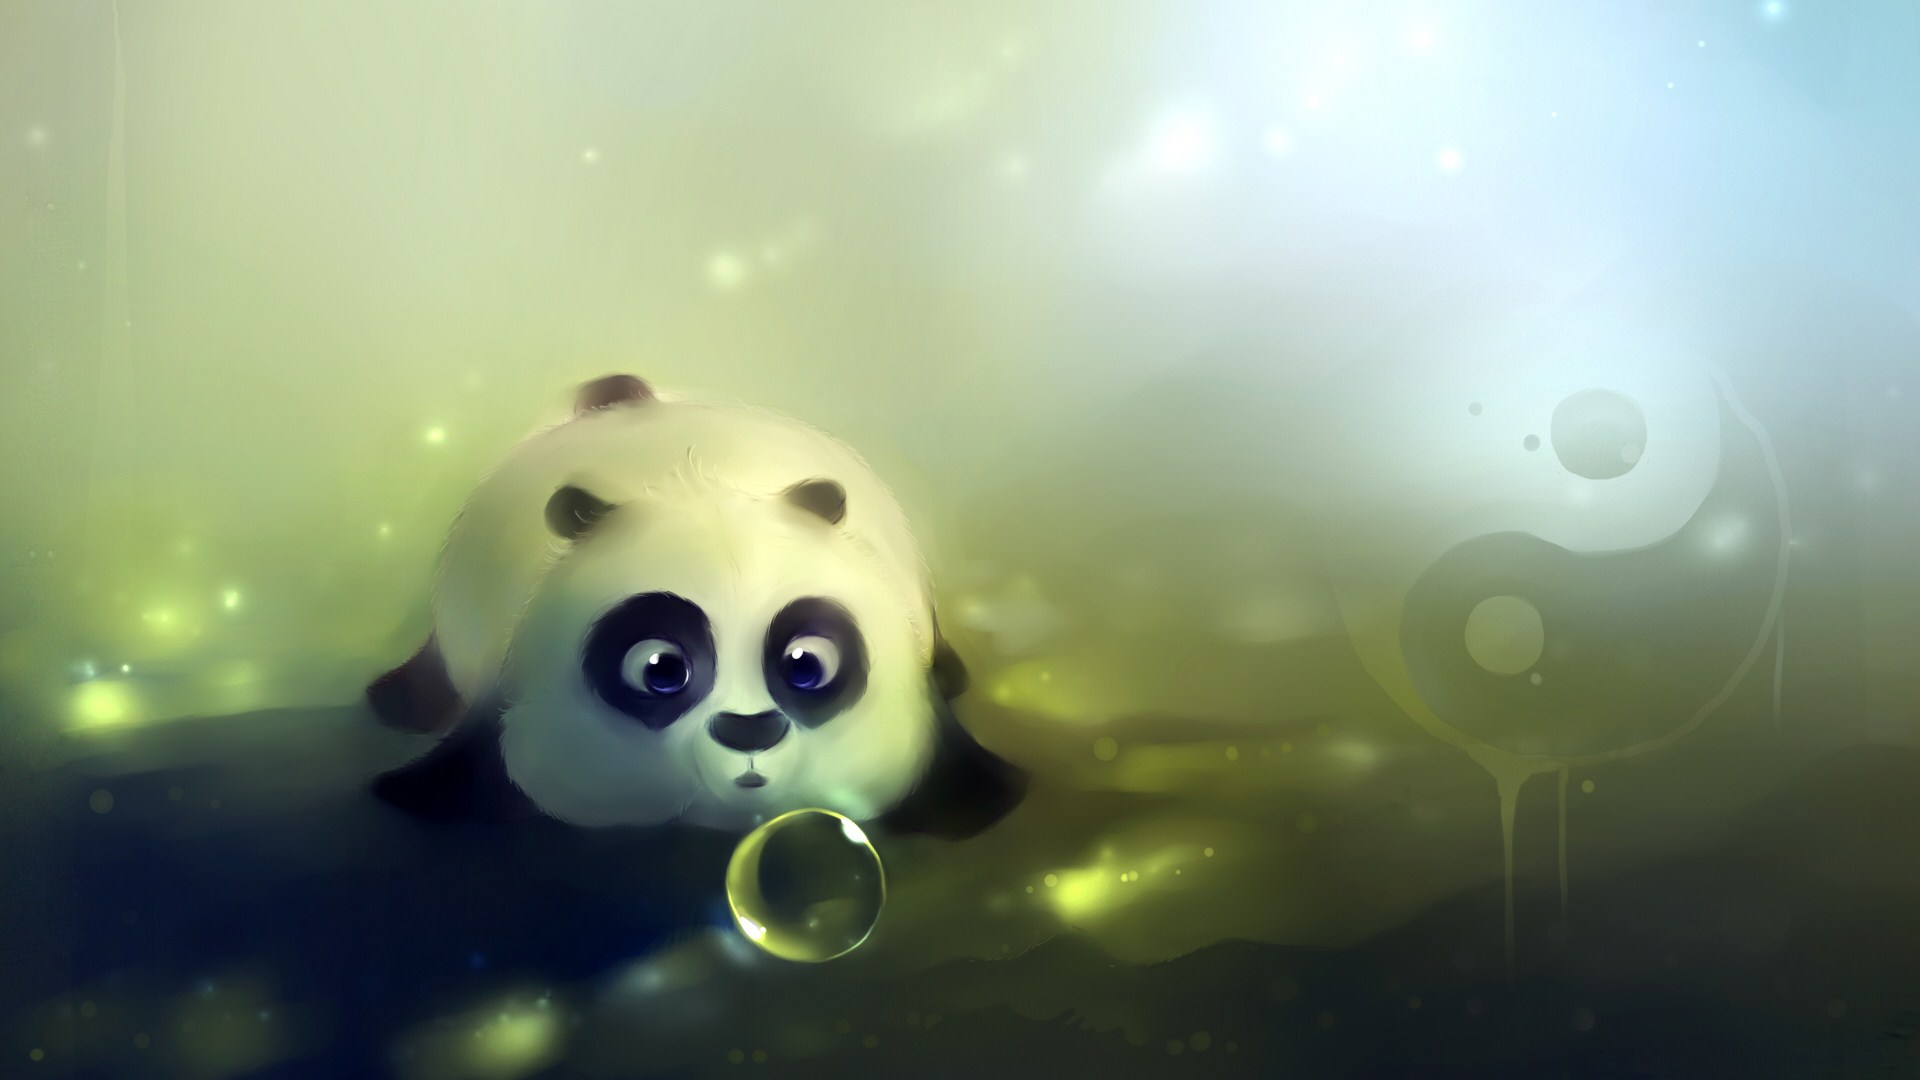 Cartoon Panda Wallpaper, 48 Cartoon Panda Wallpapers, ID:71IXK